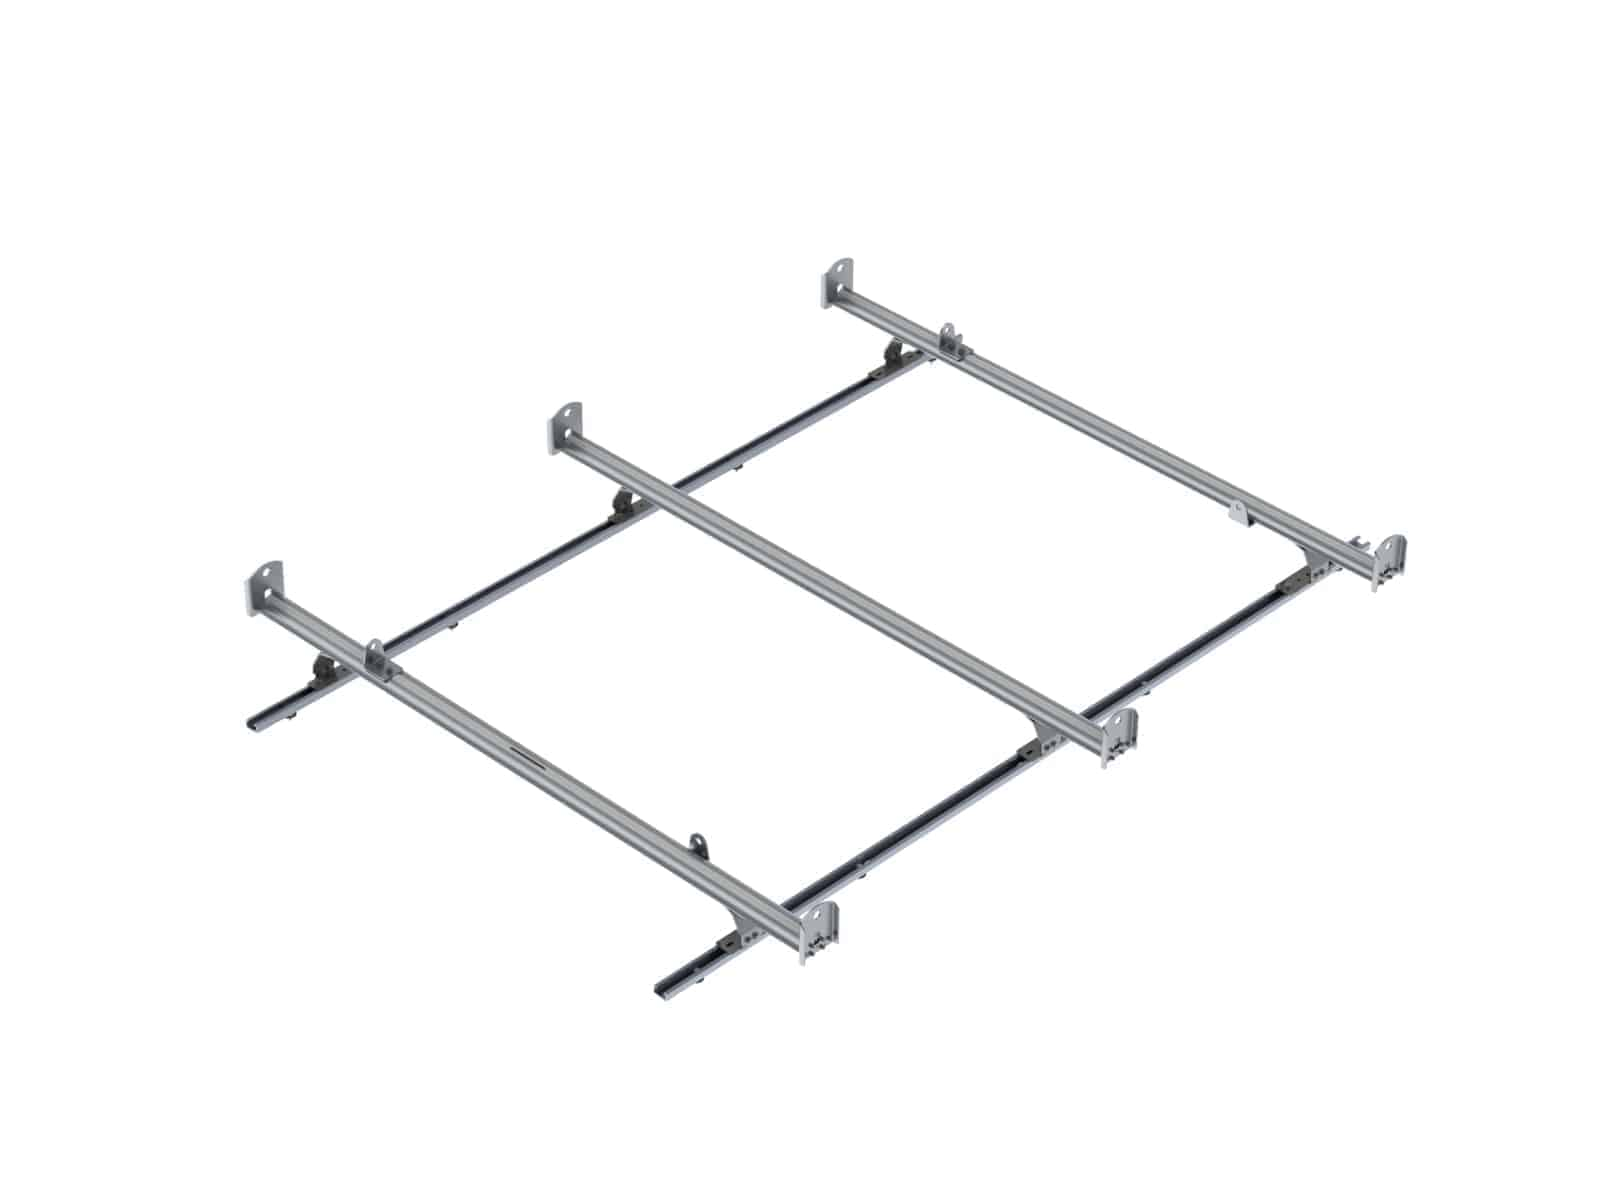 Cargo Rack For Vans 3 Bar System Ford Transit Lwb